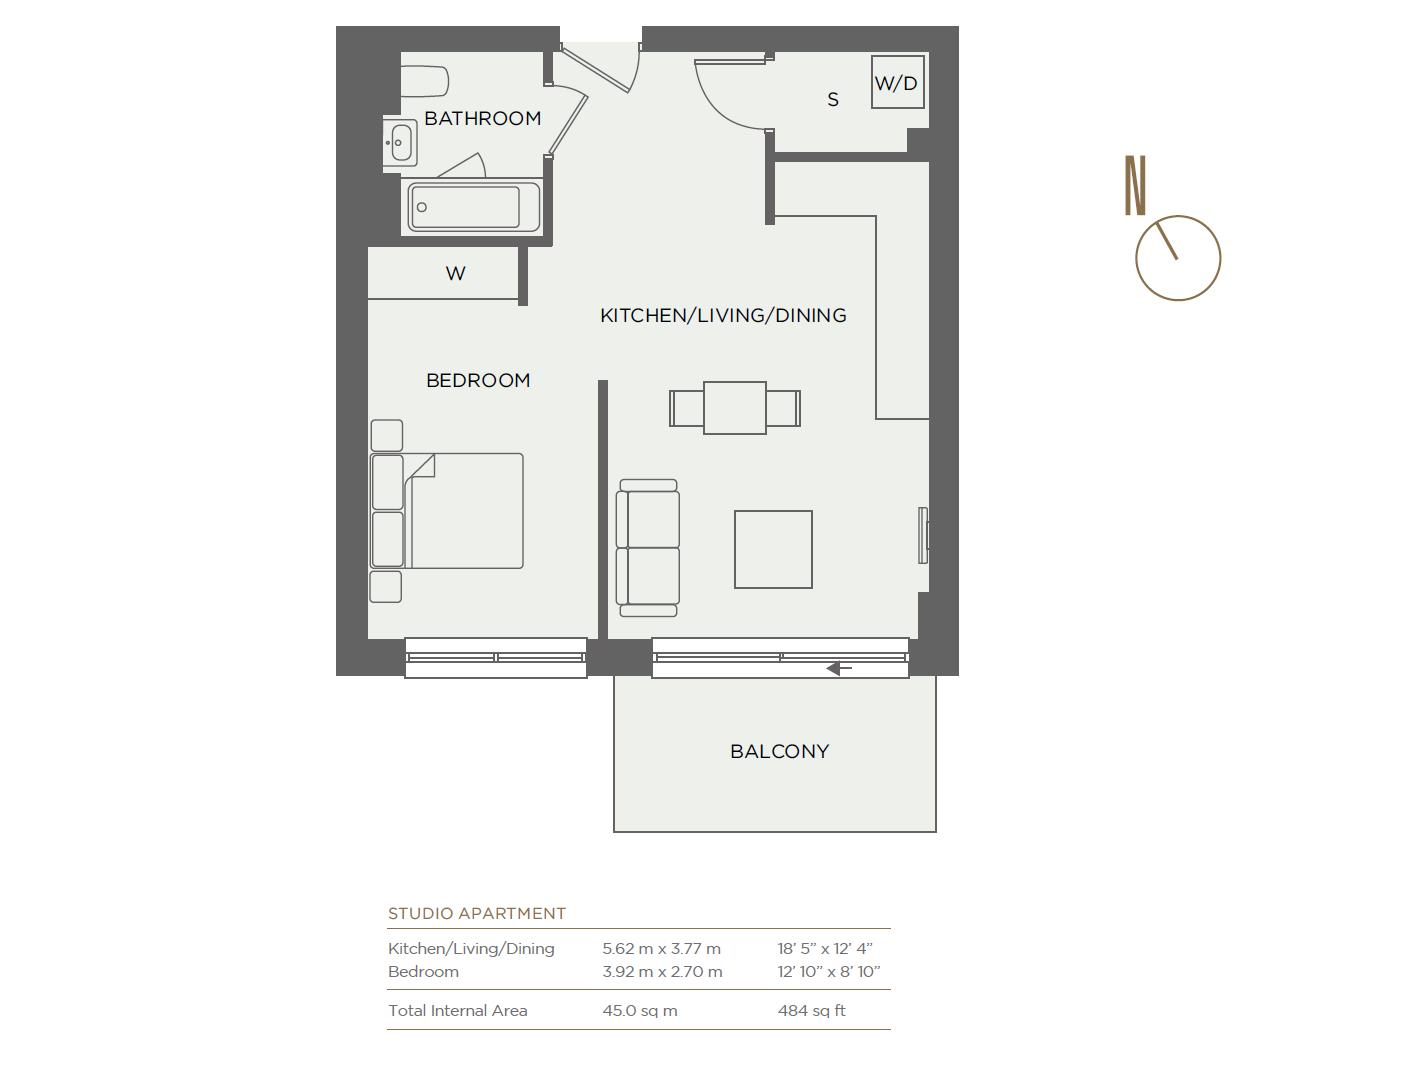 New Home Studio For Sale In Pandorea House Colindale London Nw9